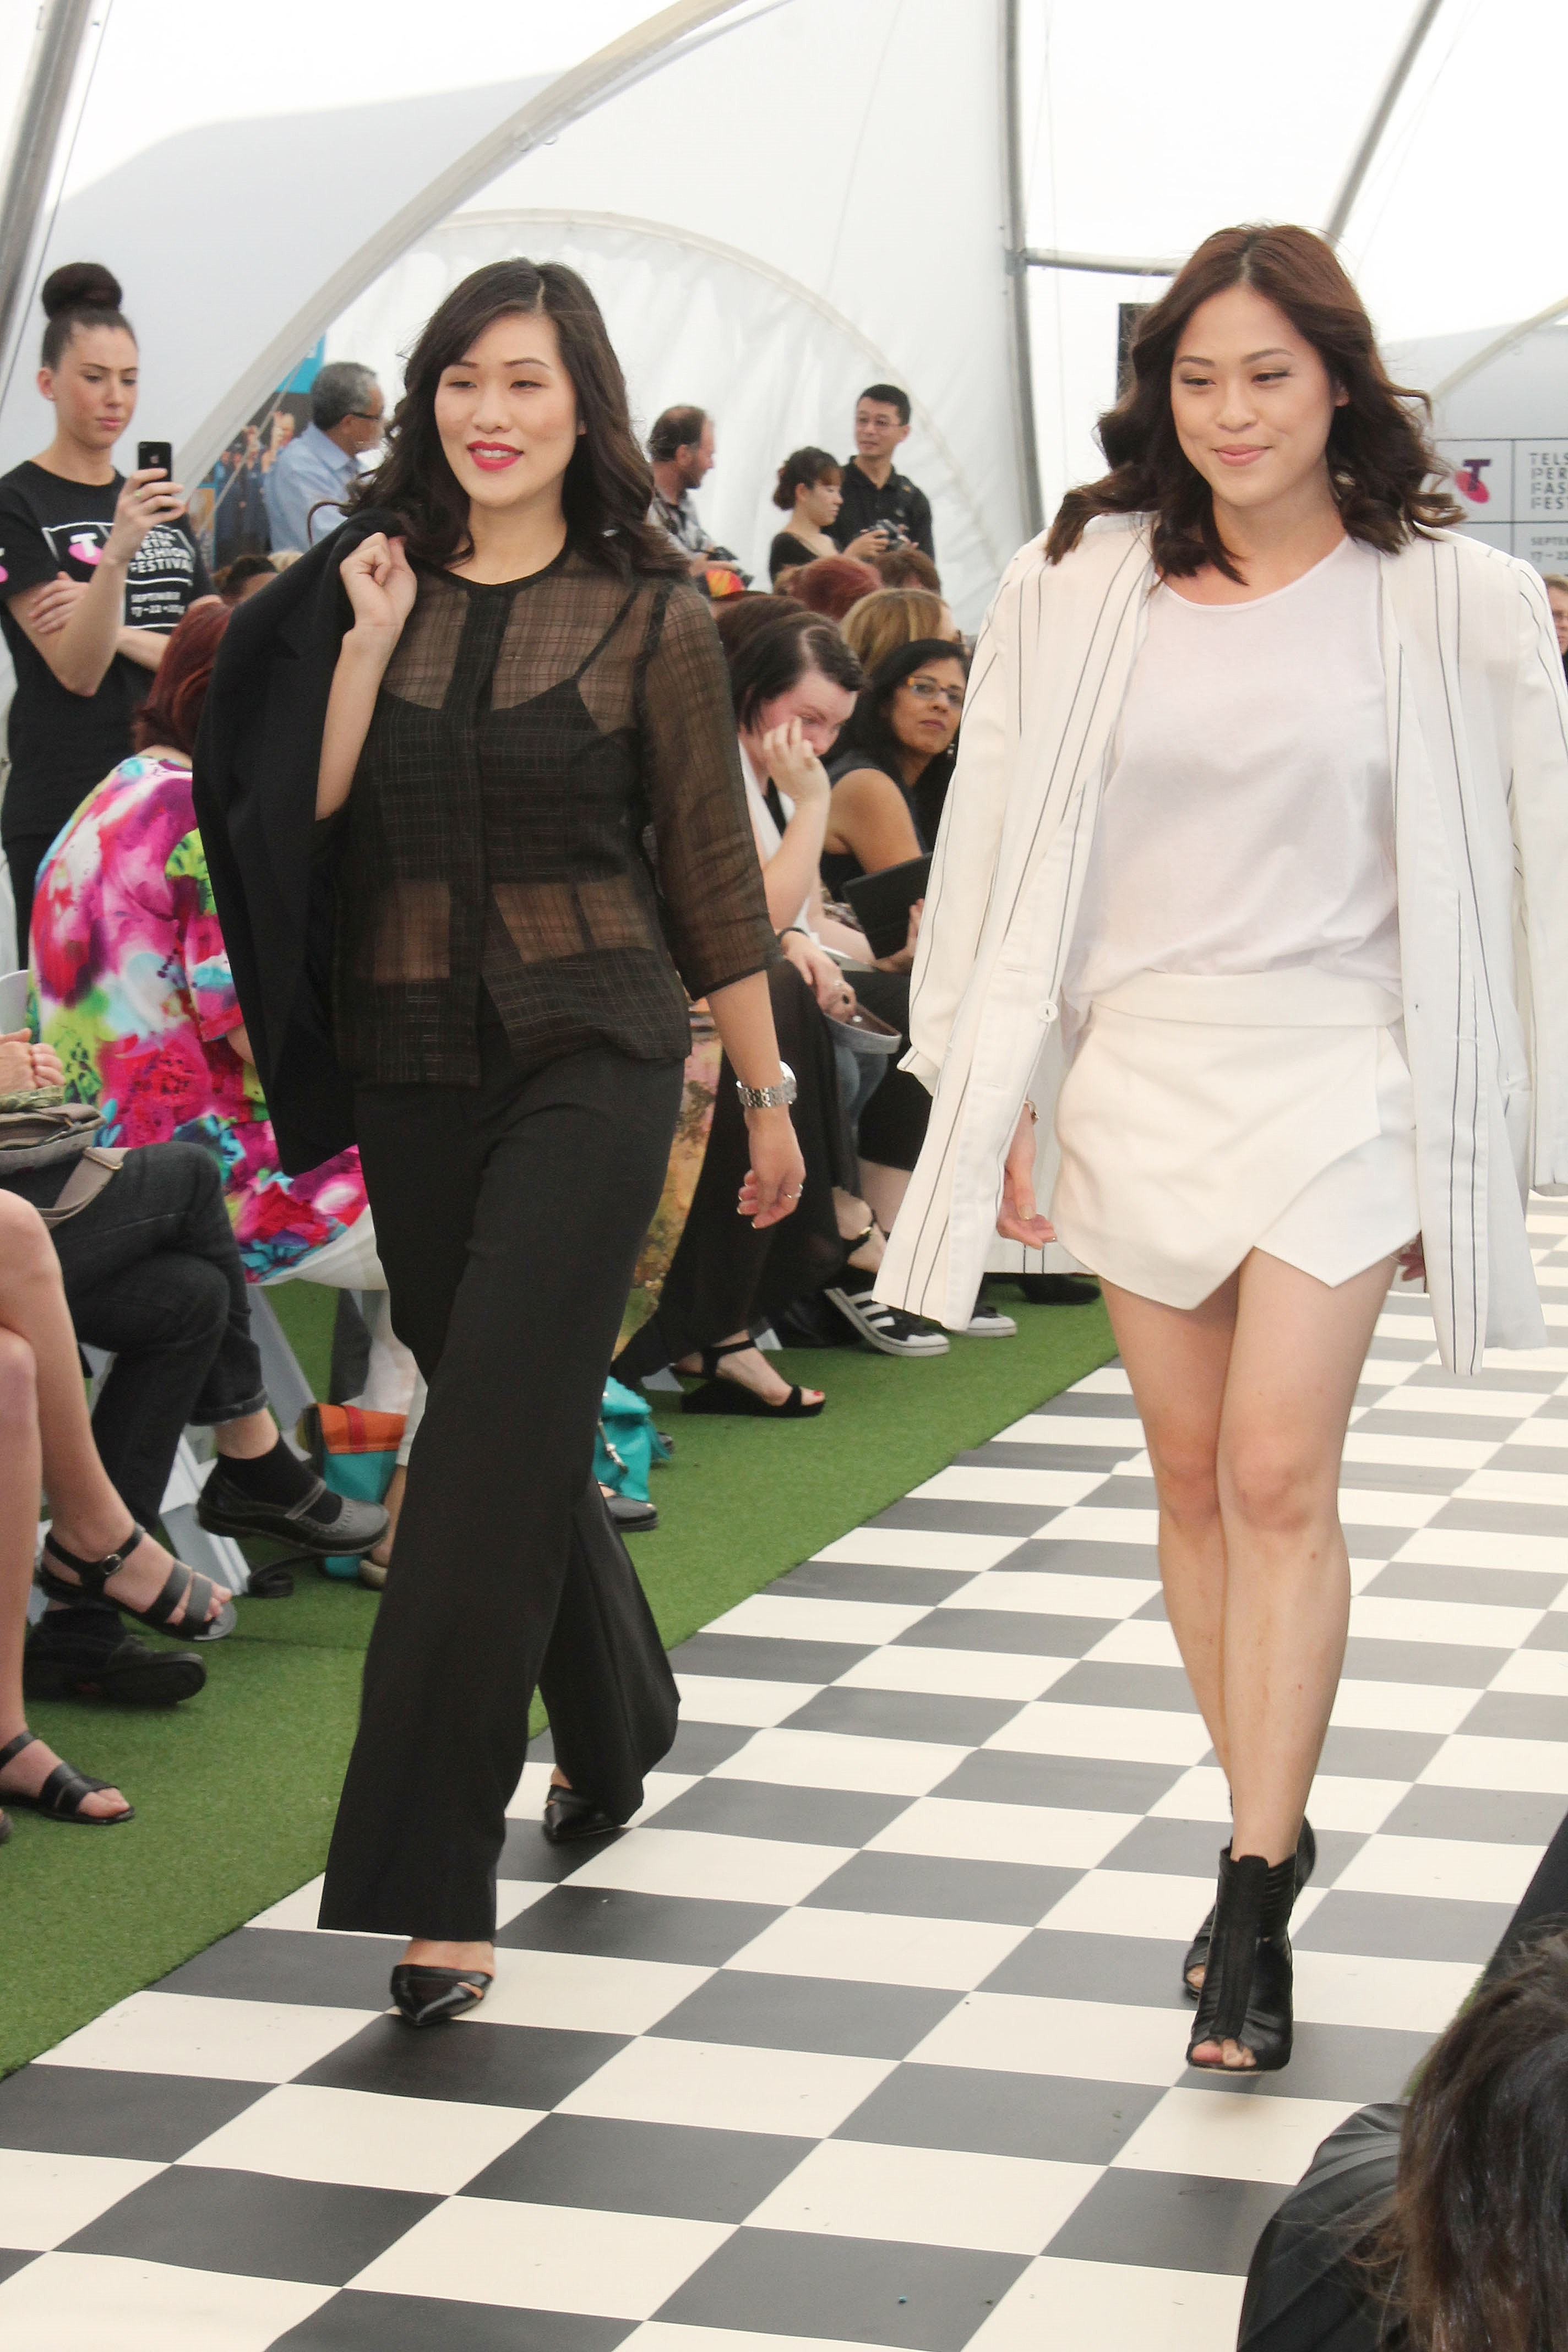 Jocelyn and Jacquelyn from Fashion 2.1 on the runway for Restyle 2014